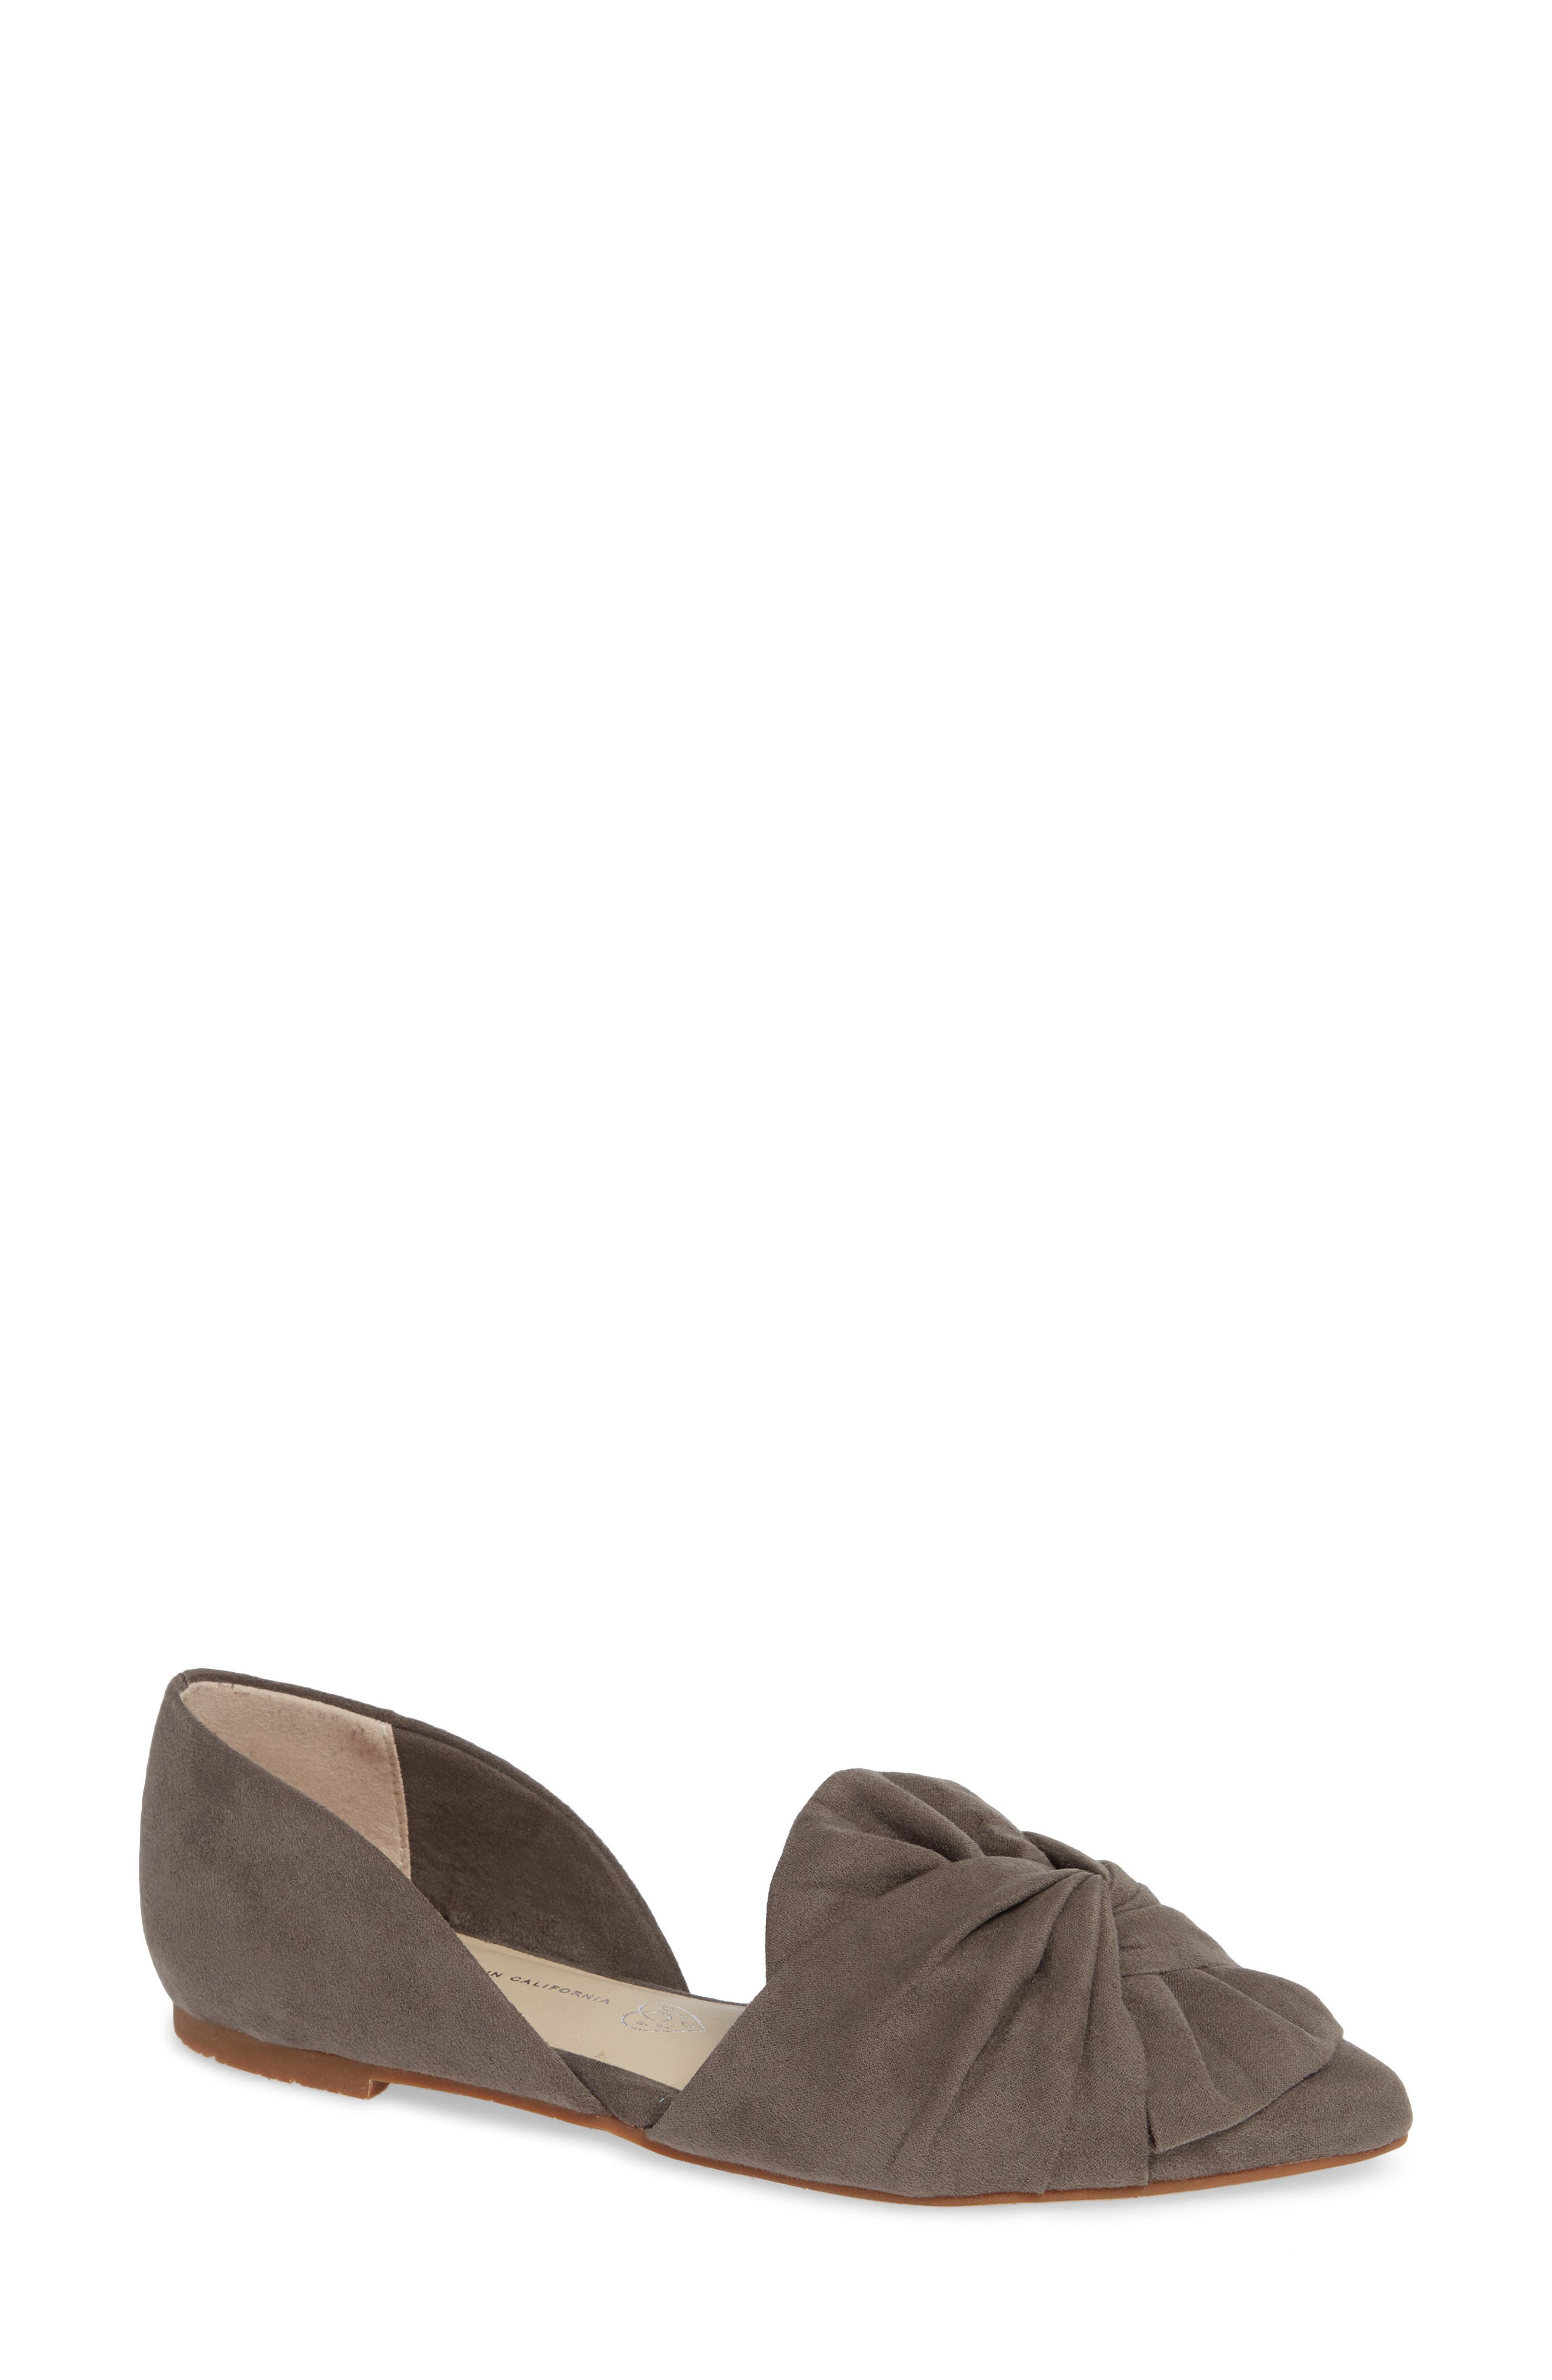 Snow Cone d'Orsay Flat,                             Main thumbnail 1, color,                             GREY SUEDE